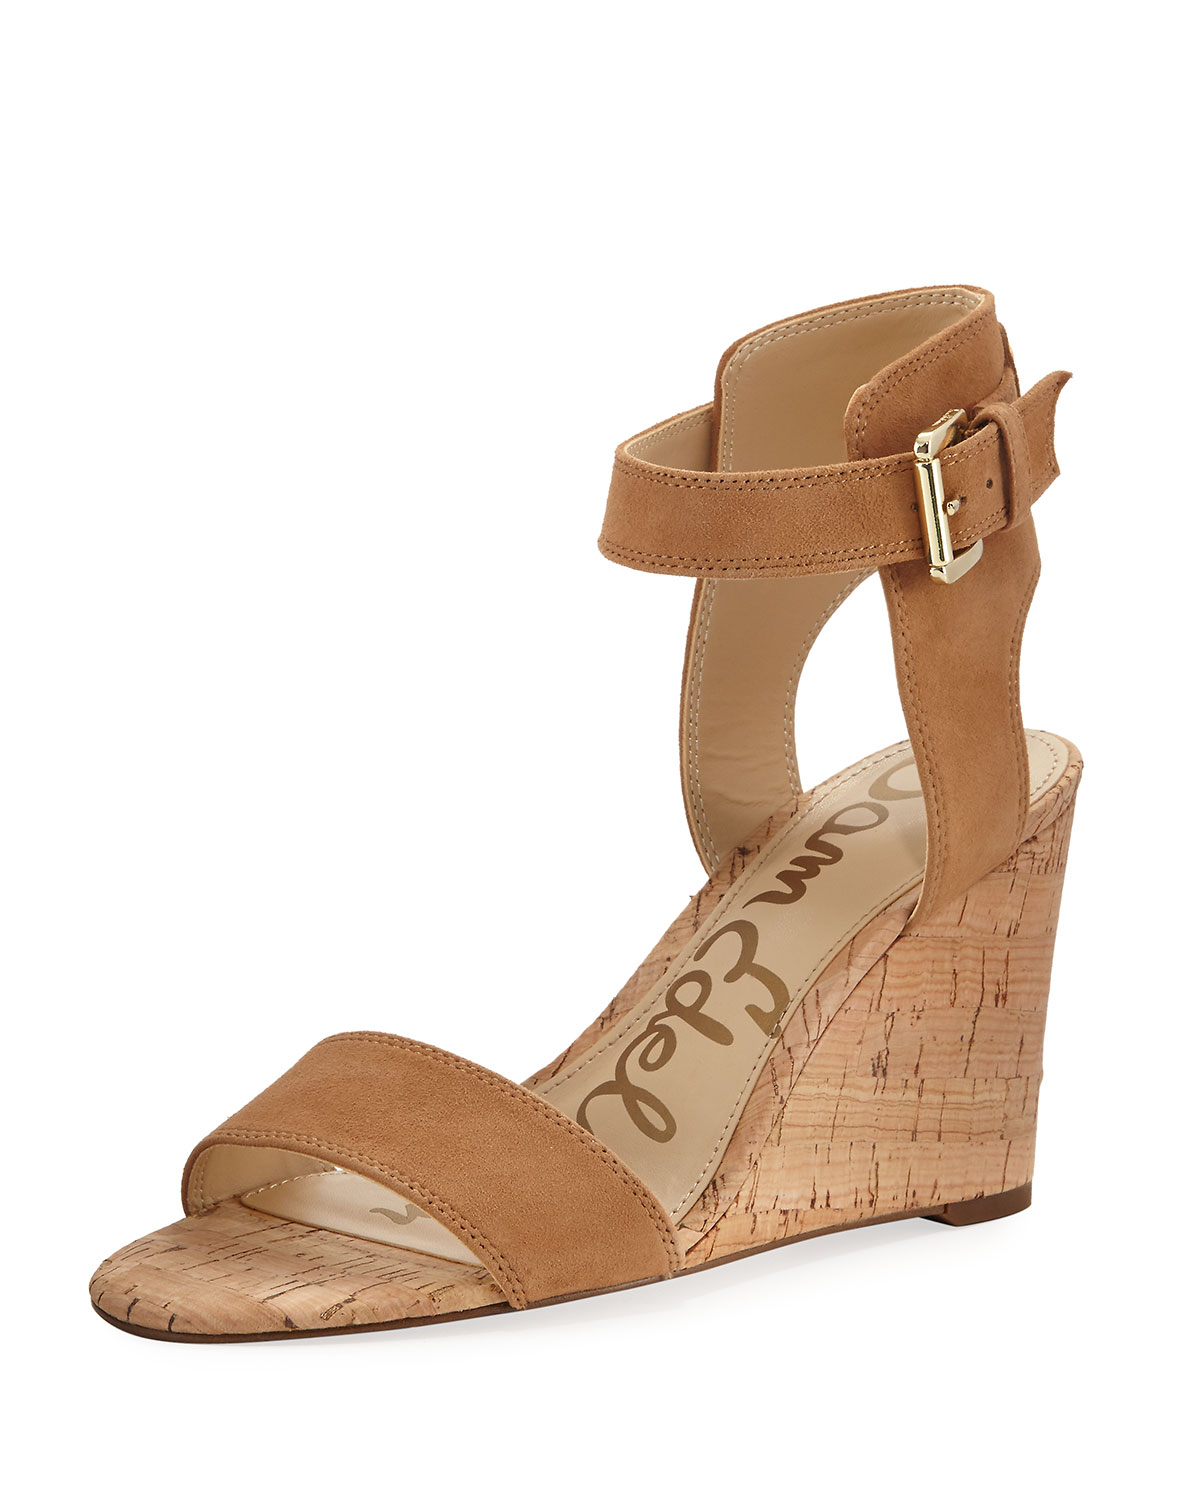 e1f966c4202cc7 Sam Edelman Willow Suede Cork Wedge Sandal